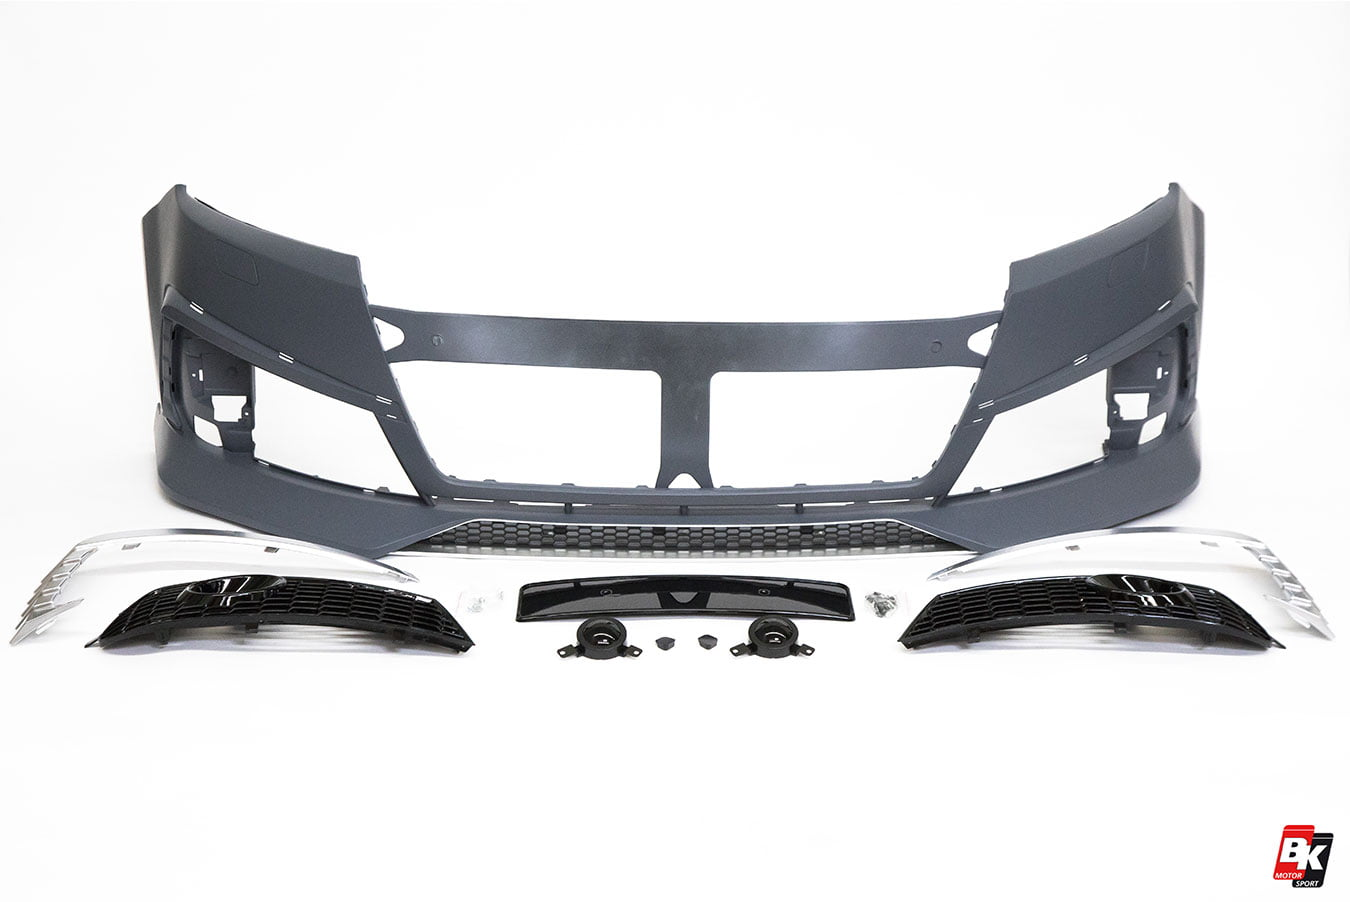 Bkm Front Bumper Kit With Grille Rs Style Glossy Black Audi Q7 Headlight Wiring Harness Fits